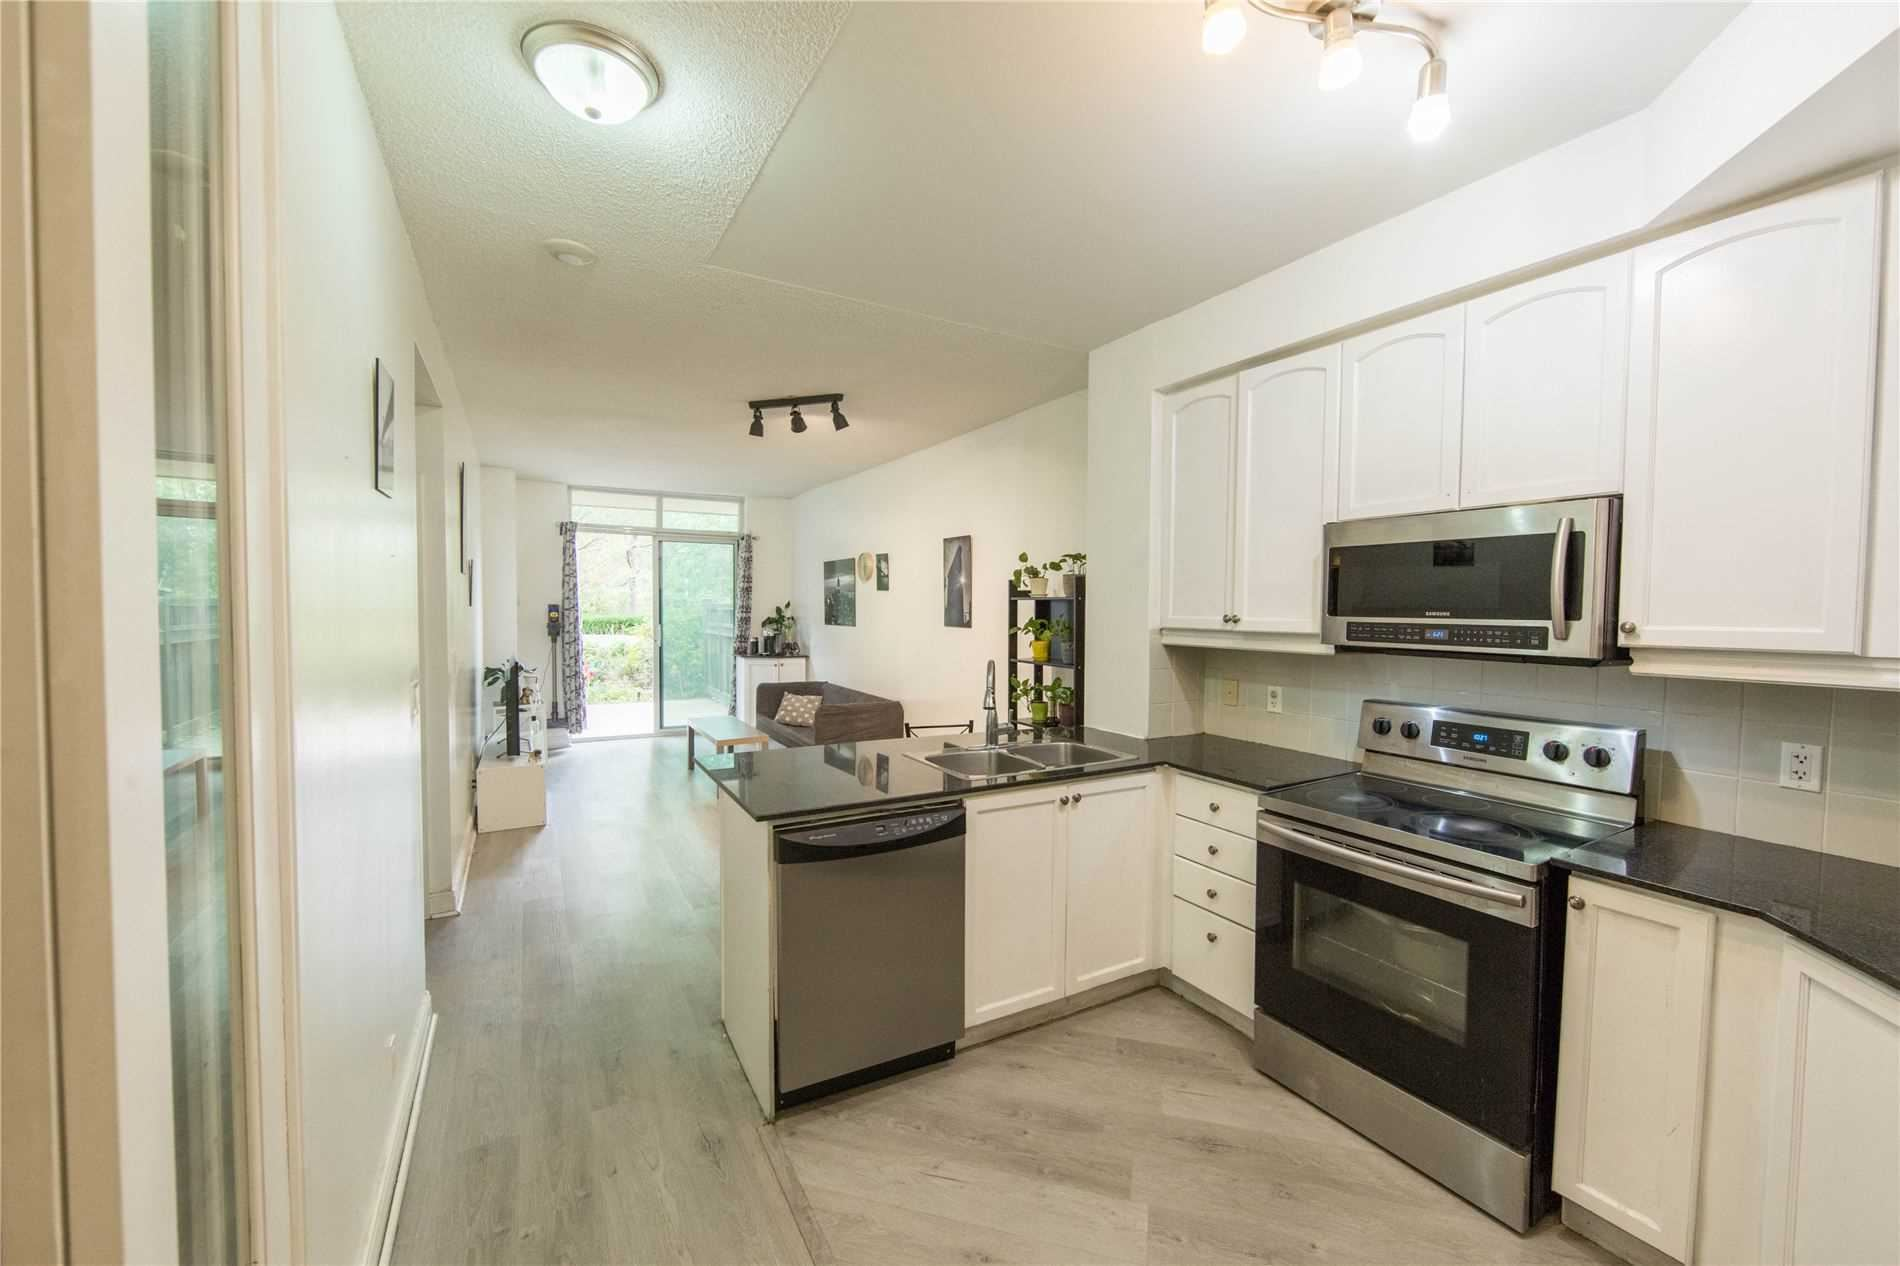 90 Absolute Ave #307, Mississauga, ON L4Z0A3 - MLS#: W5397210